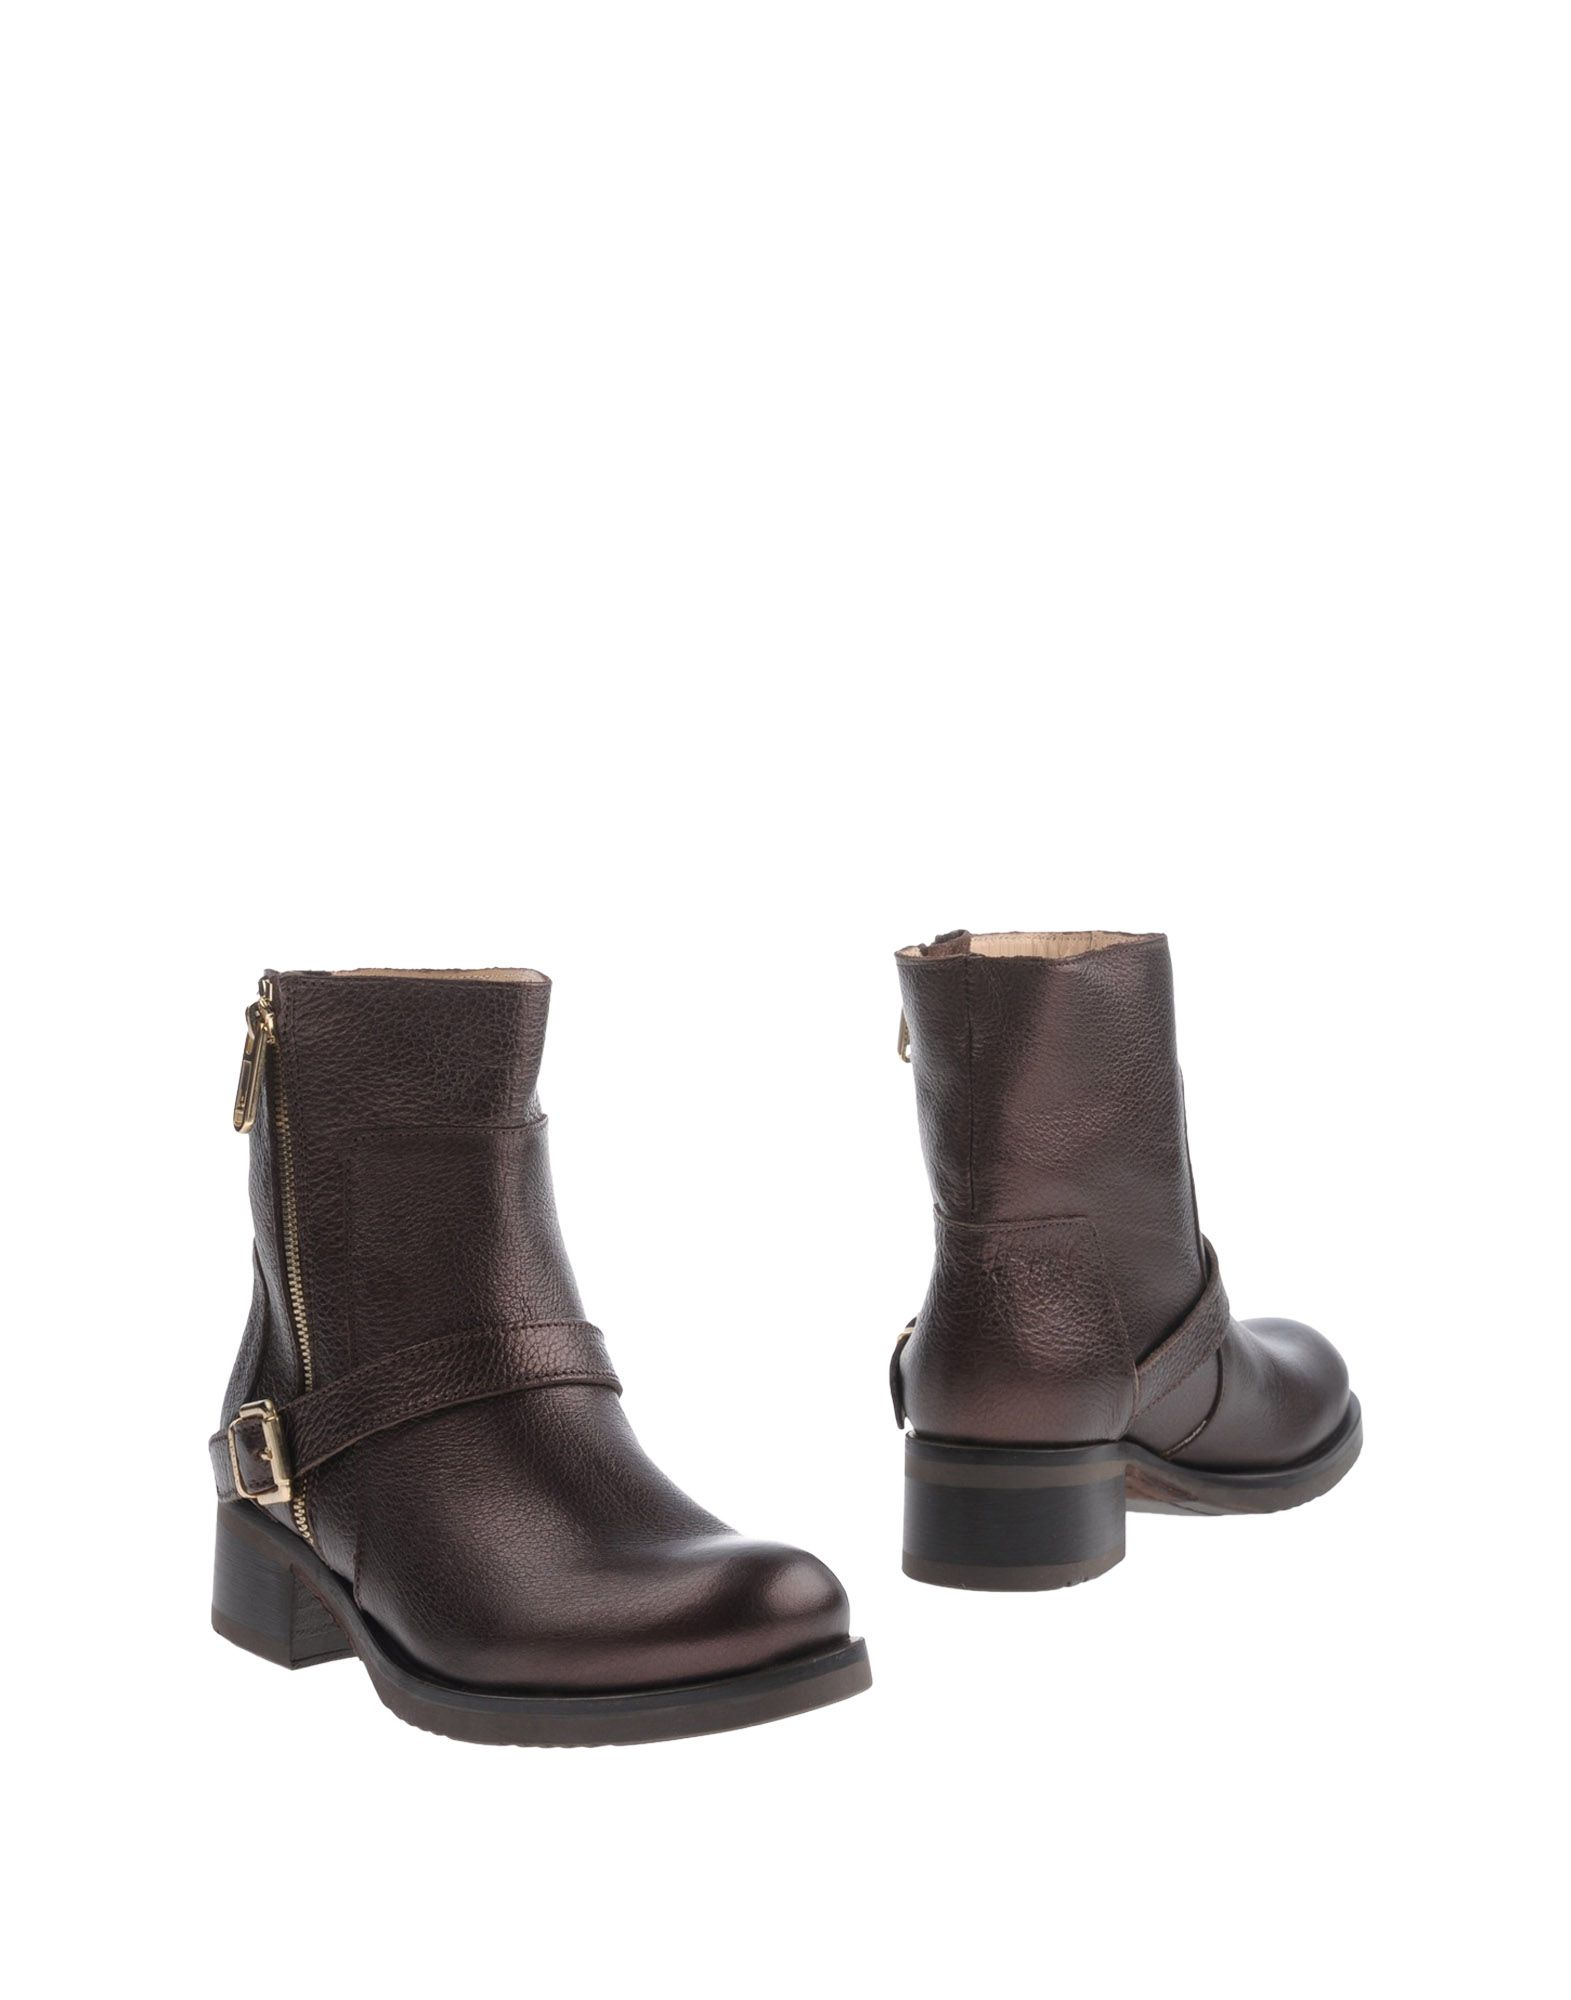 Liu •Jo Shoes Stiefelette Damen  11219289MX